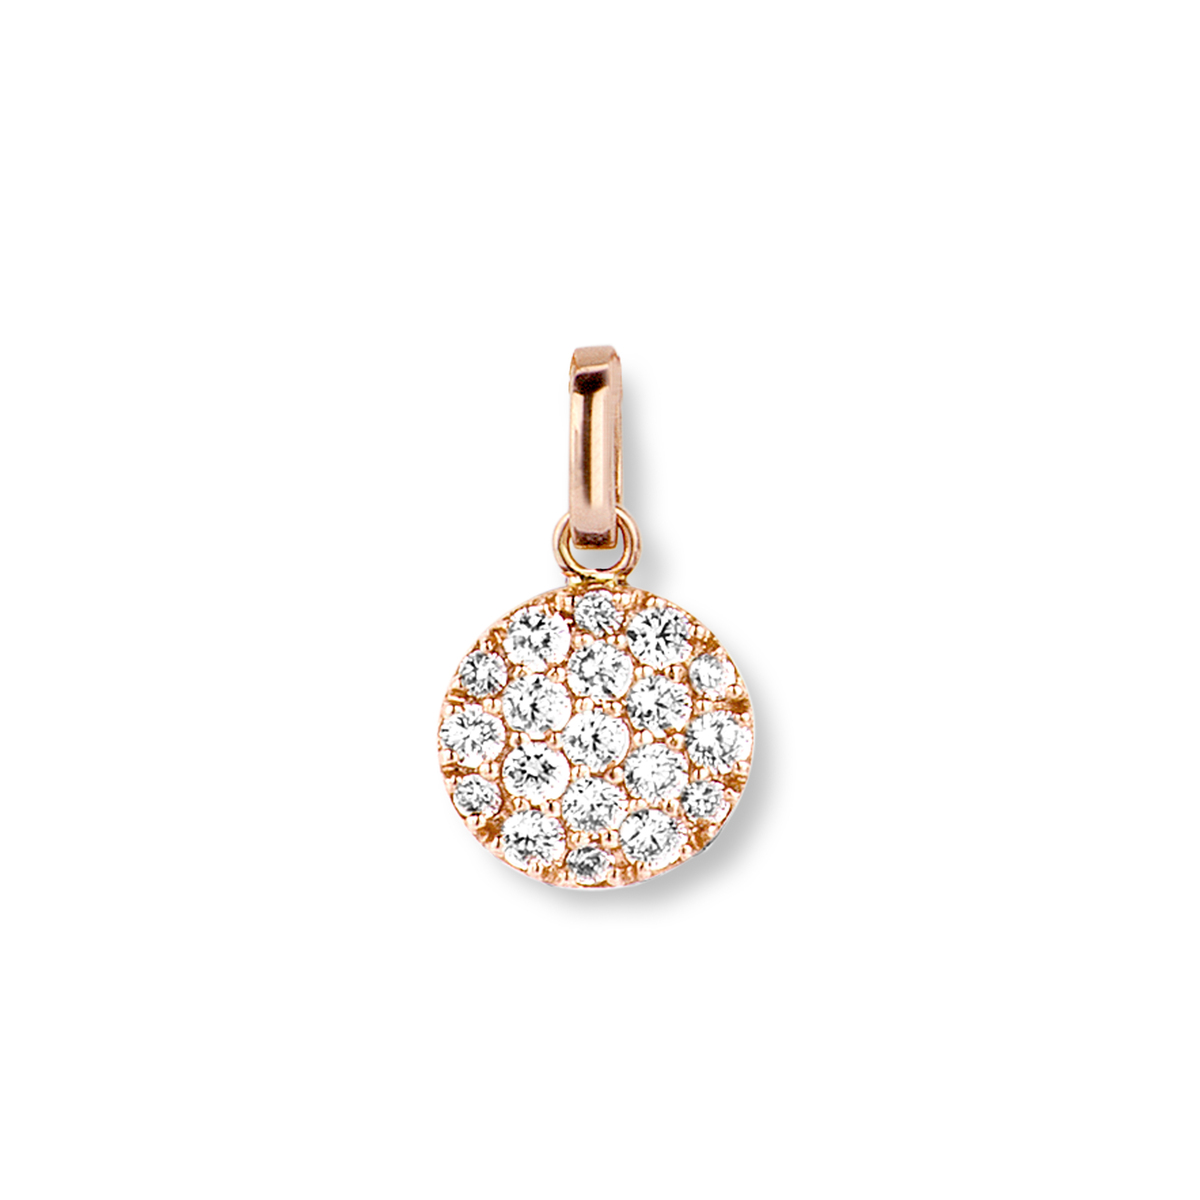 eolo pendant in rose gold